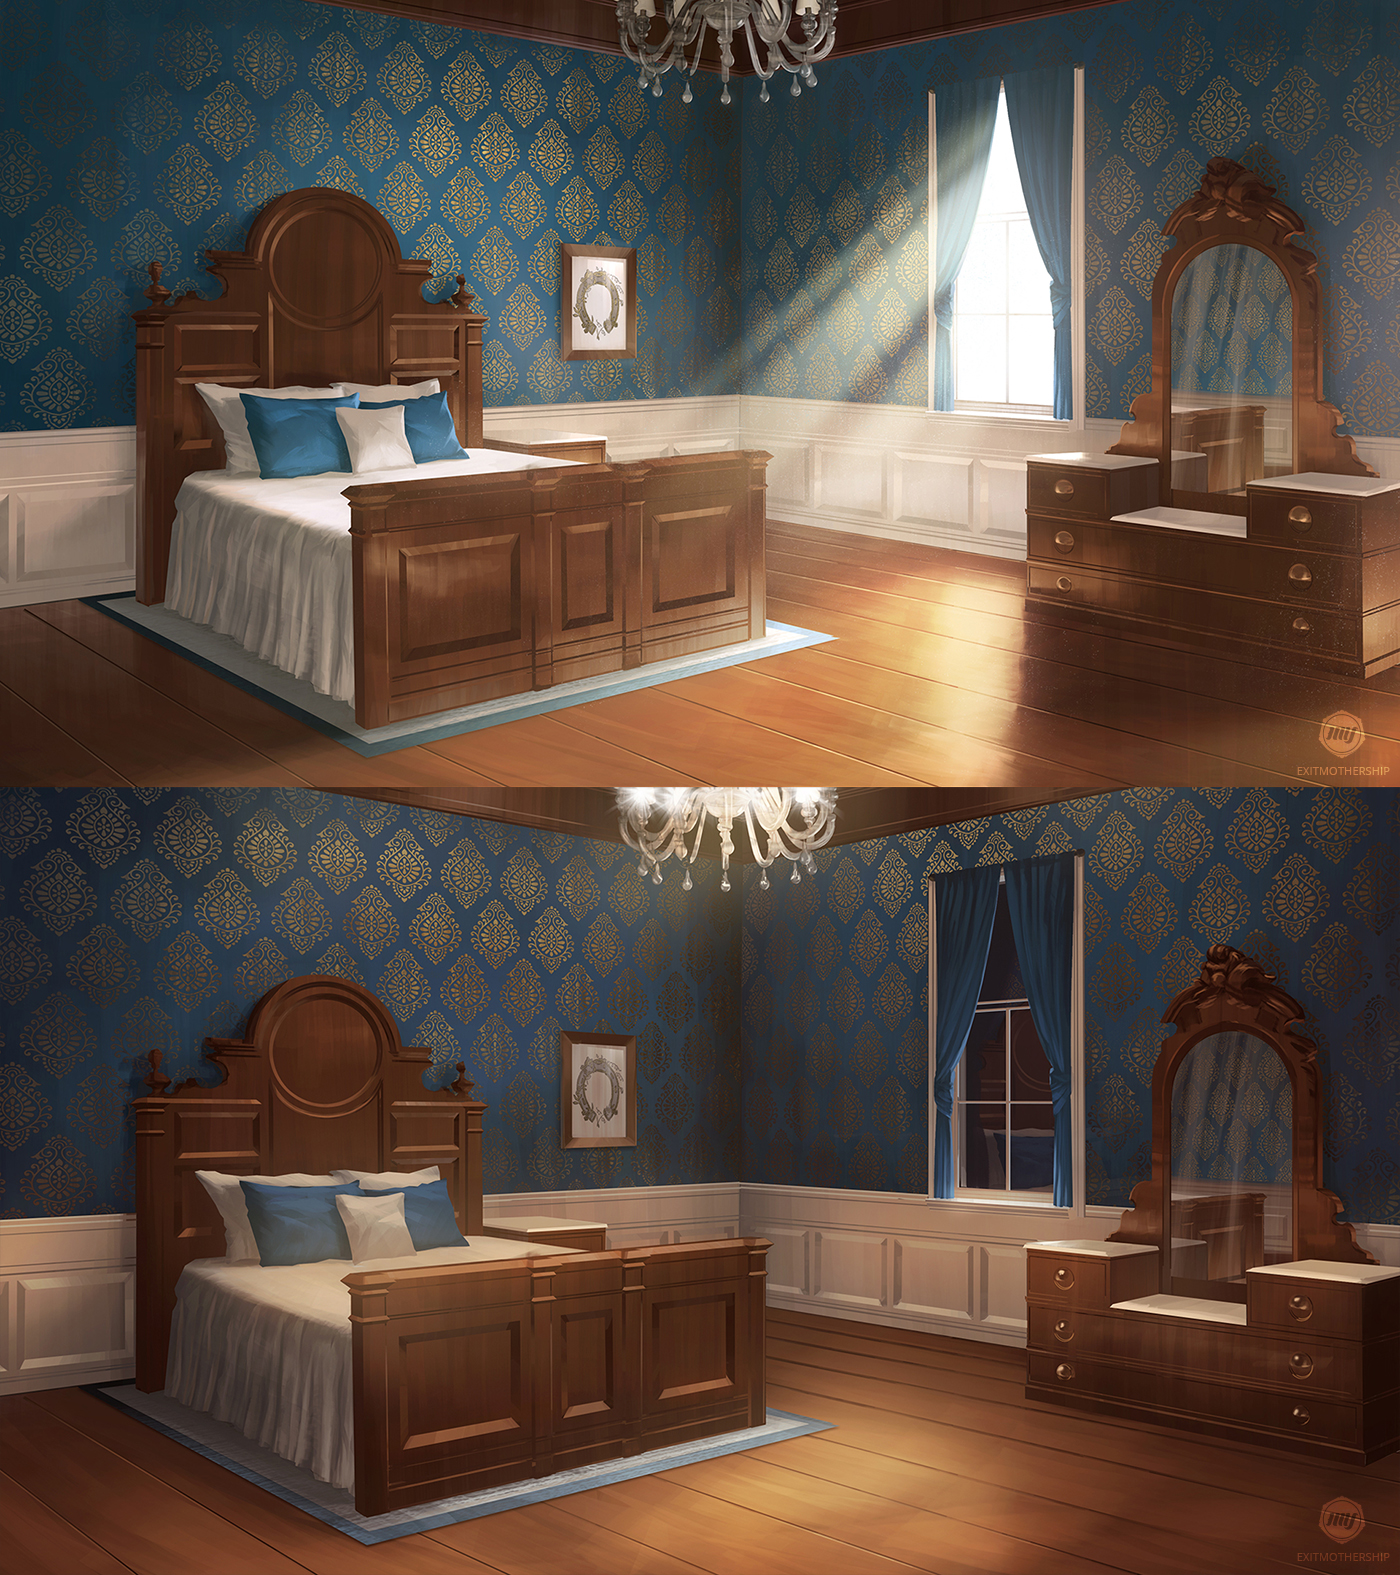 Mansion Bedroom (VN Background) By ExitMothership On